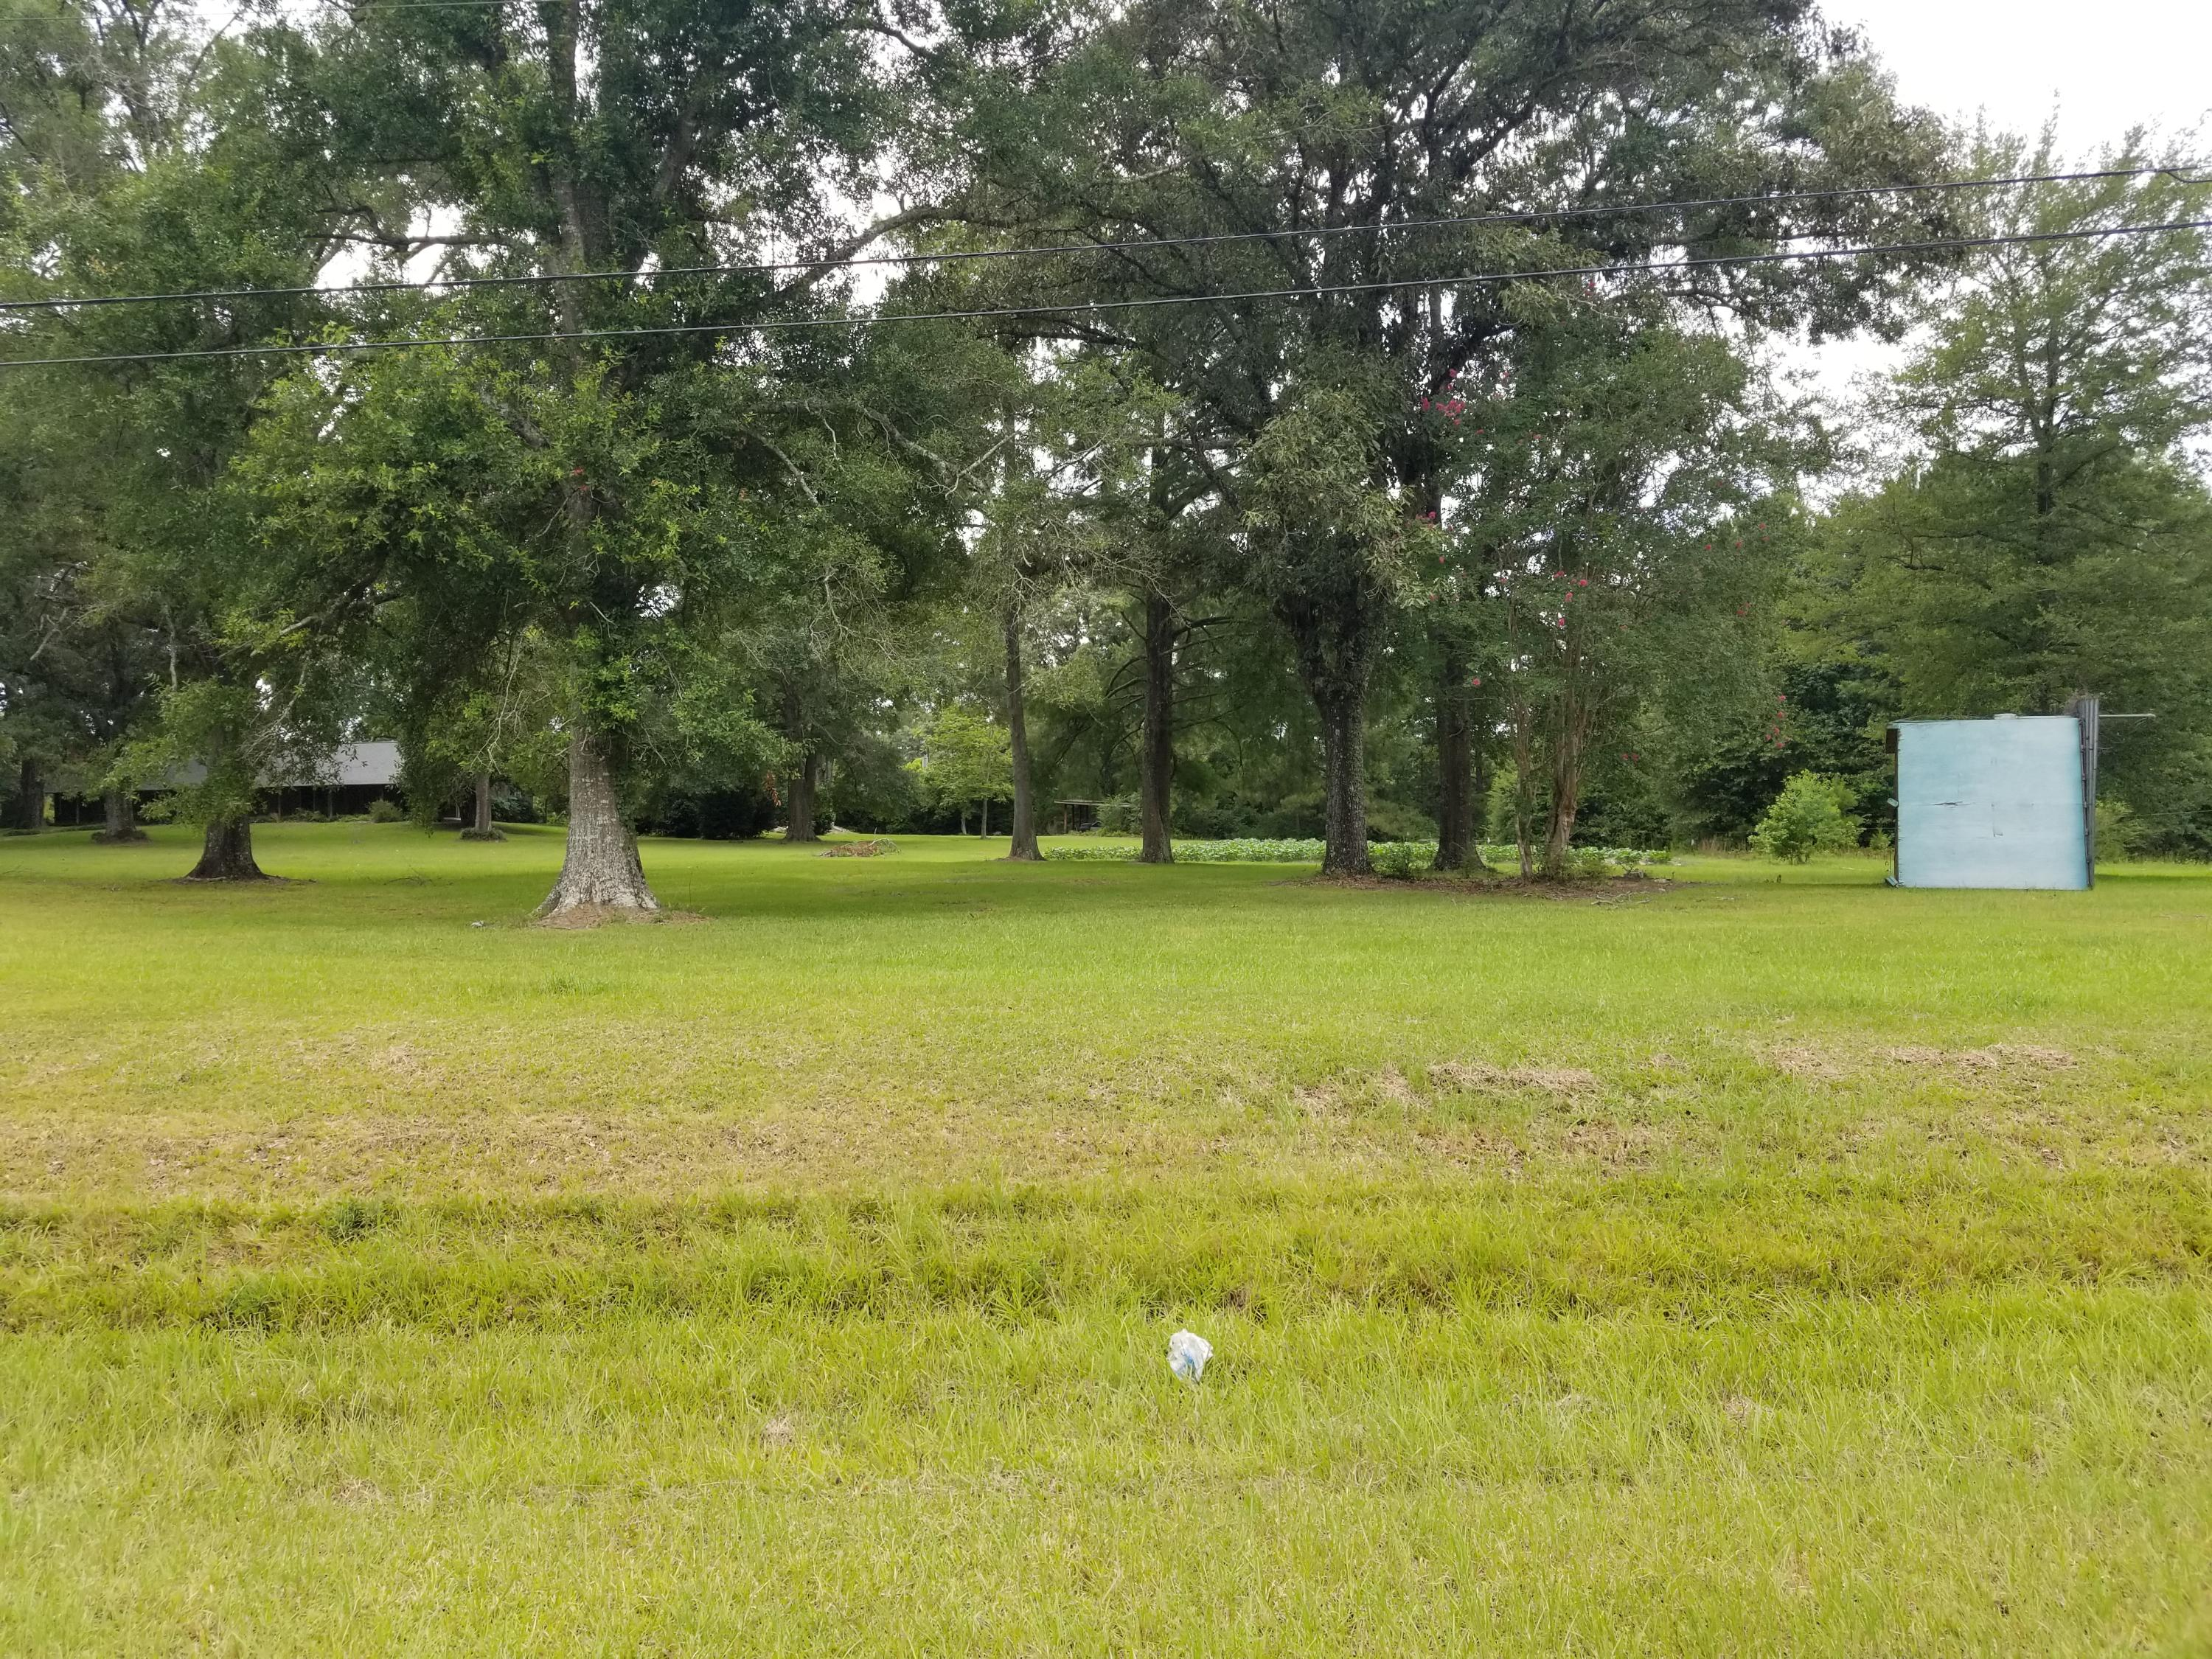 DeRidder land for sale,  TBD HWY 171, DeRidder LA - $275,000